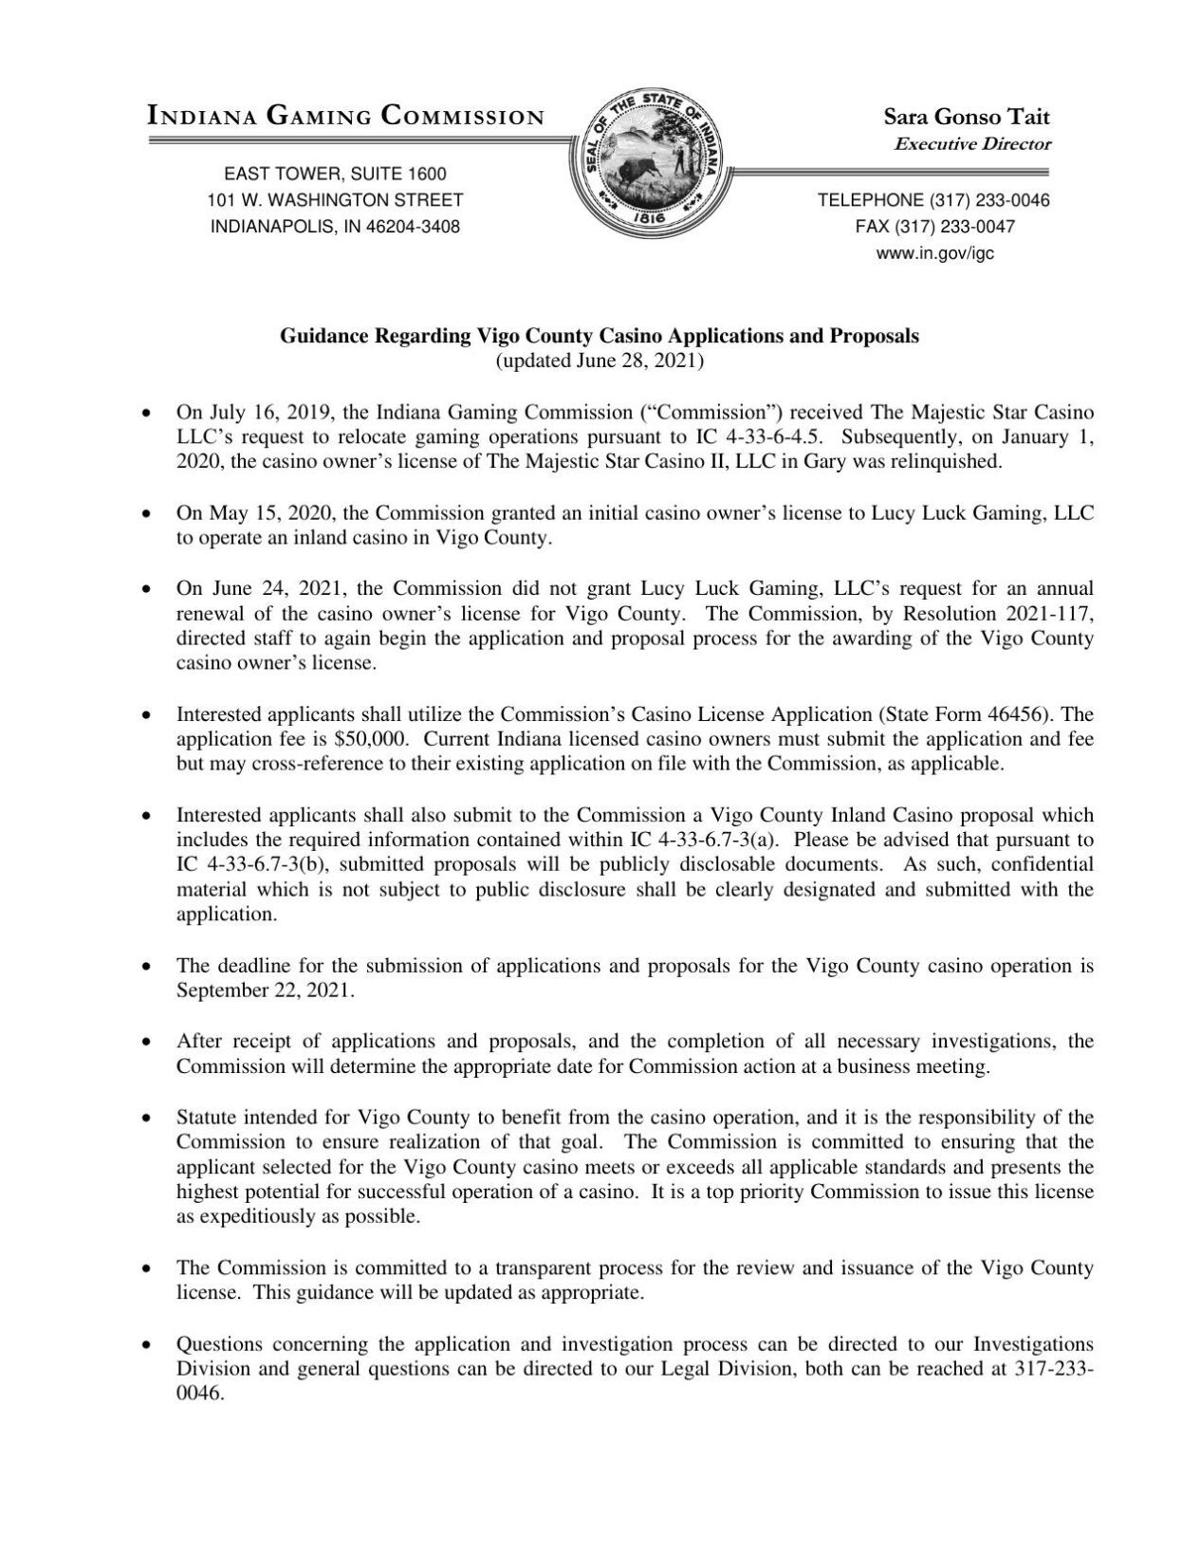 Indiana Gaming Commission guidance for Terre Haute casino relicensing